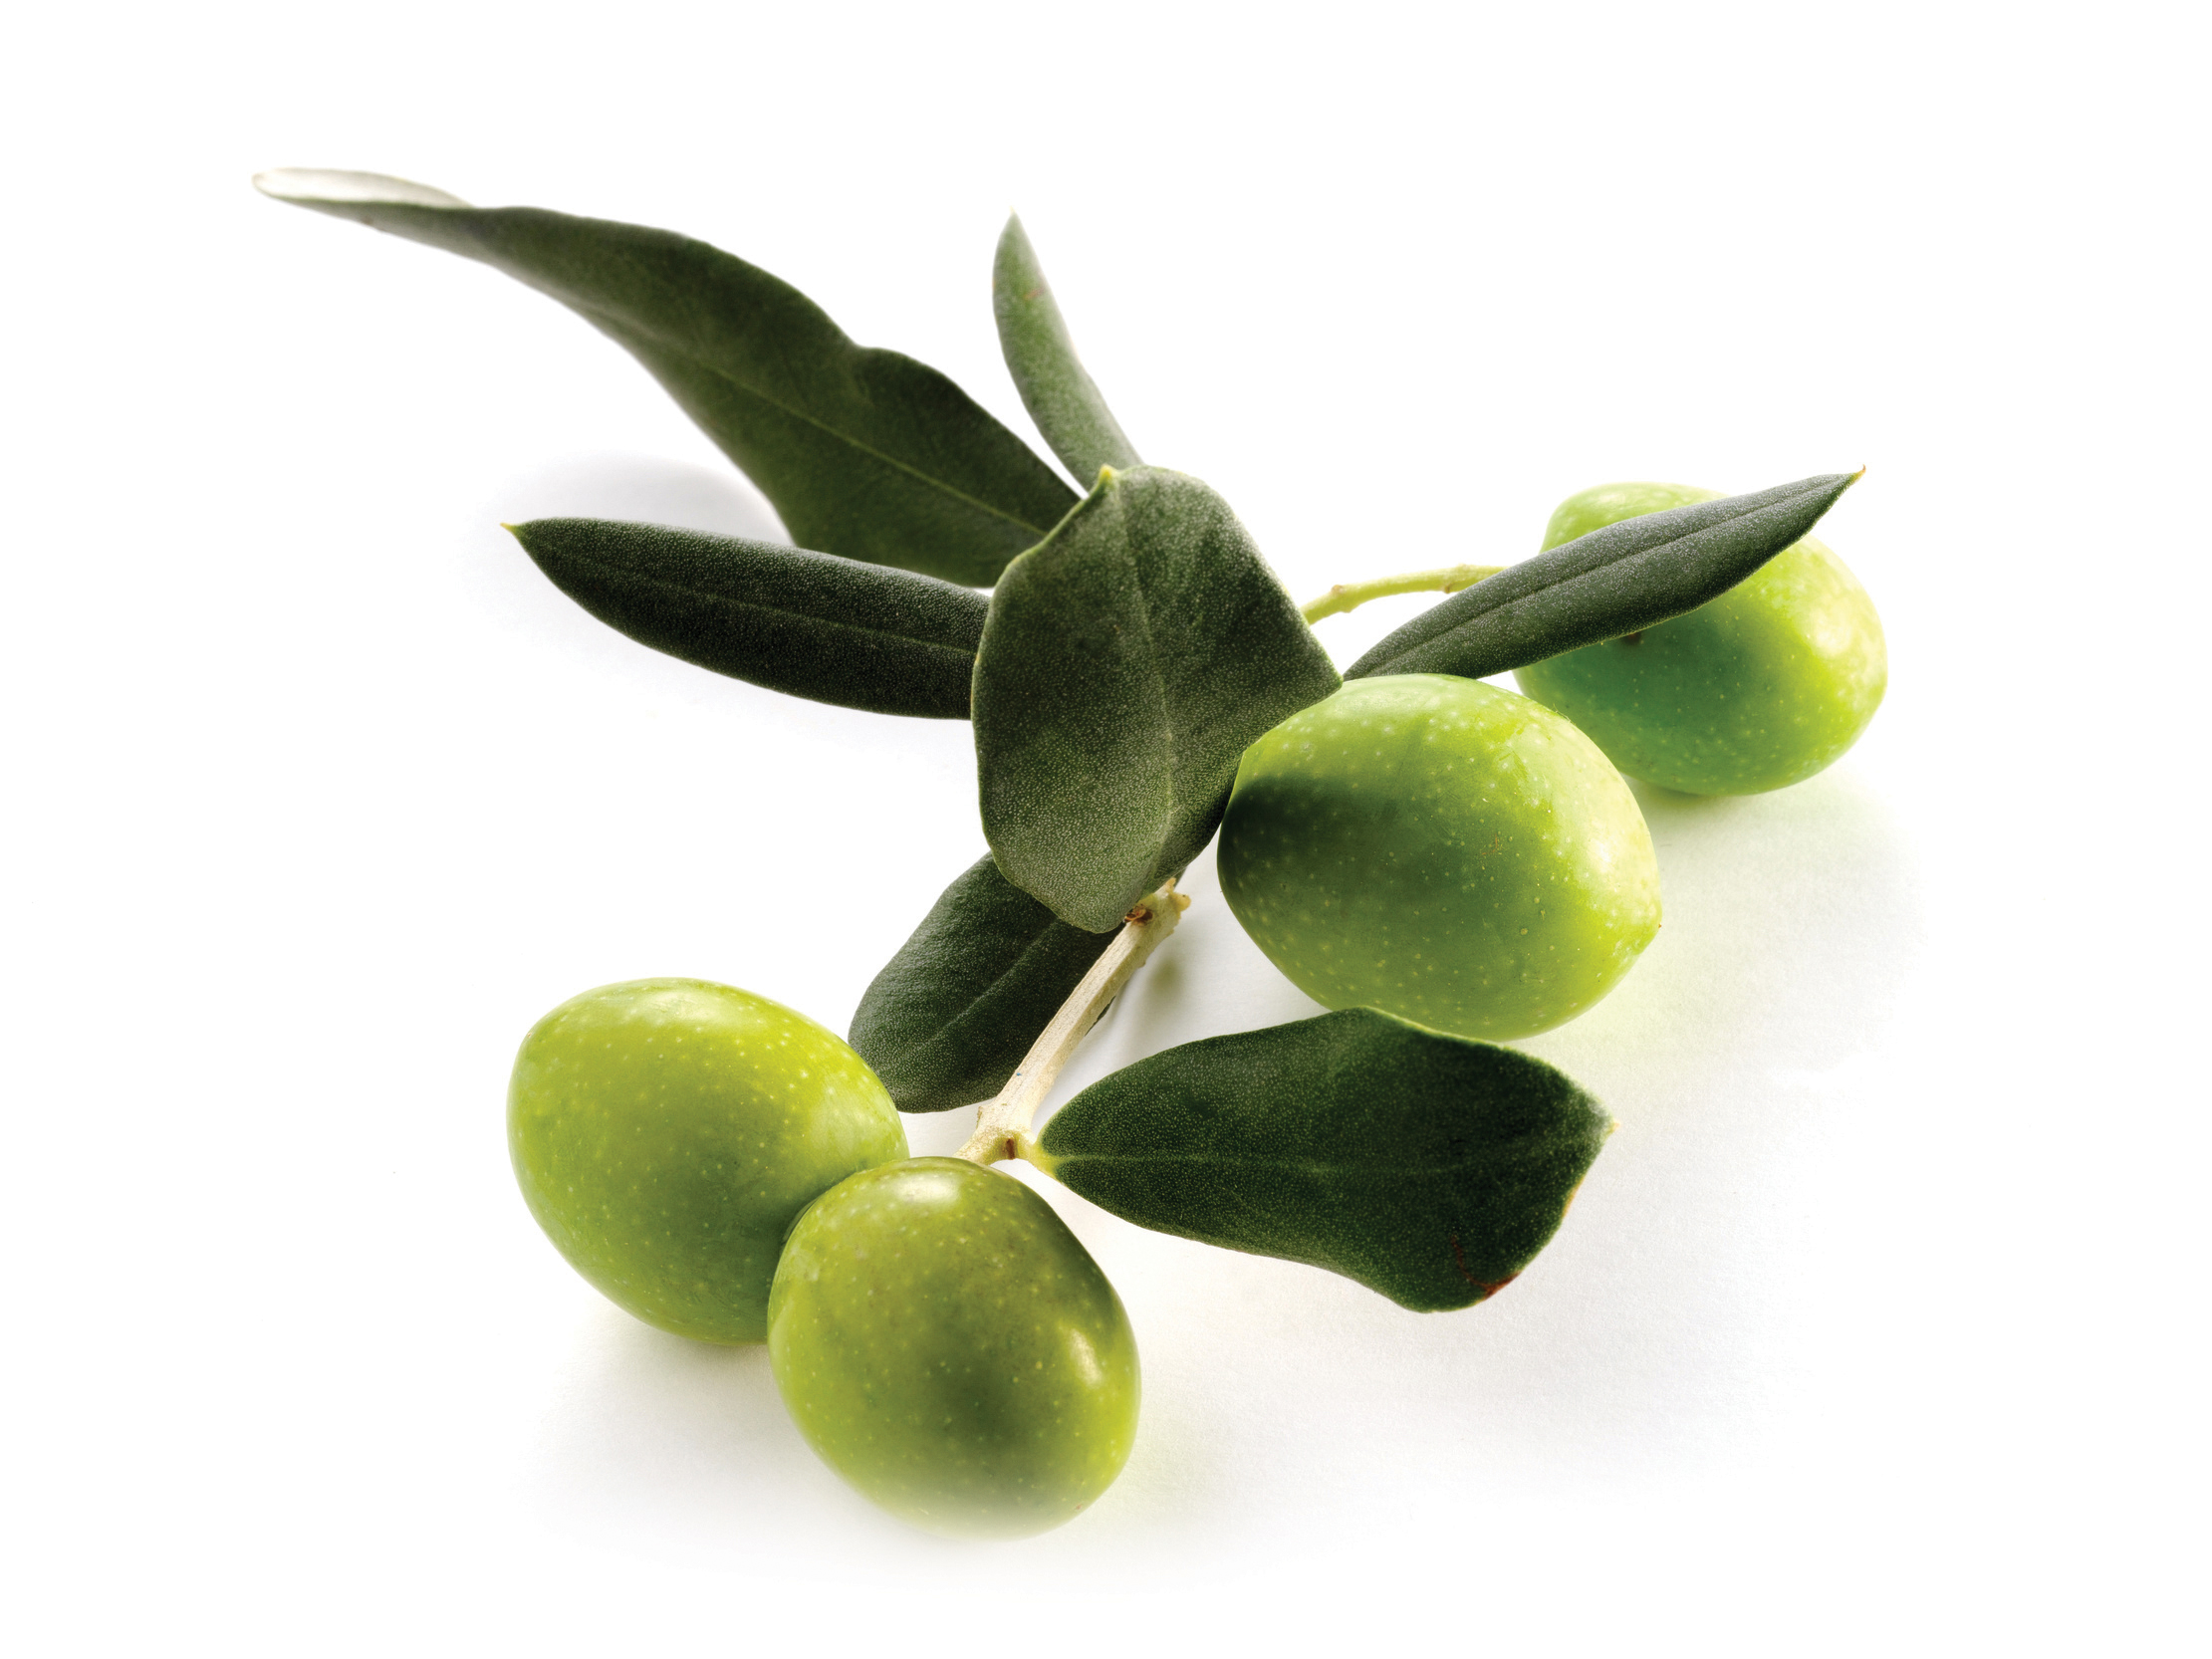 FOUR OLIVES ON BRANCH WITH LEAVES